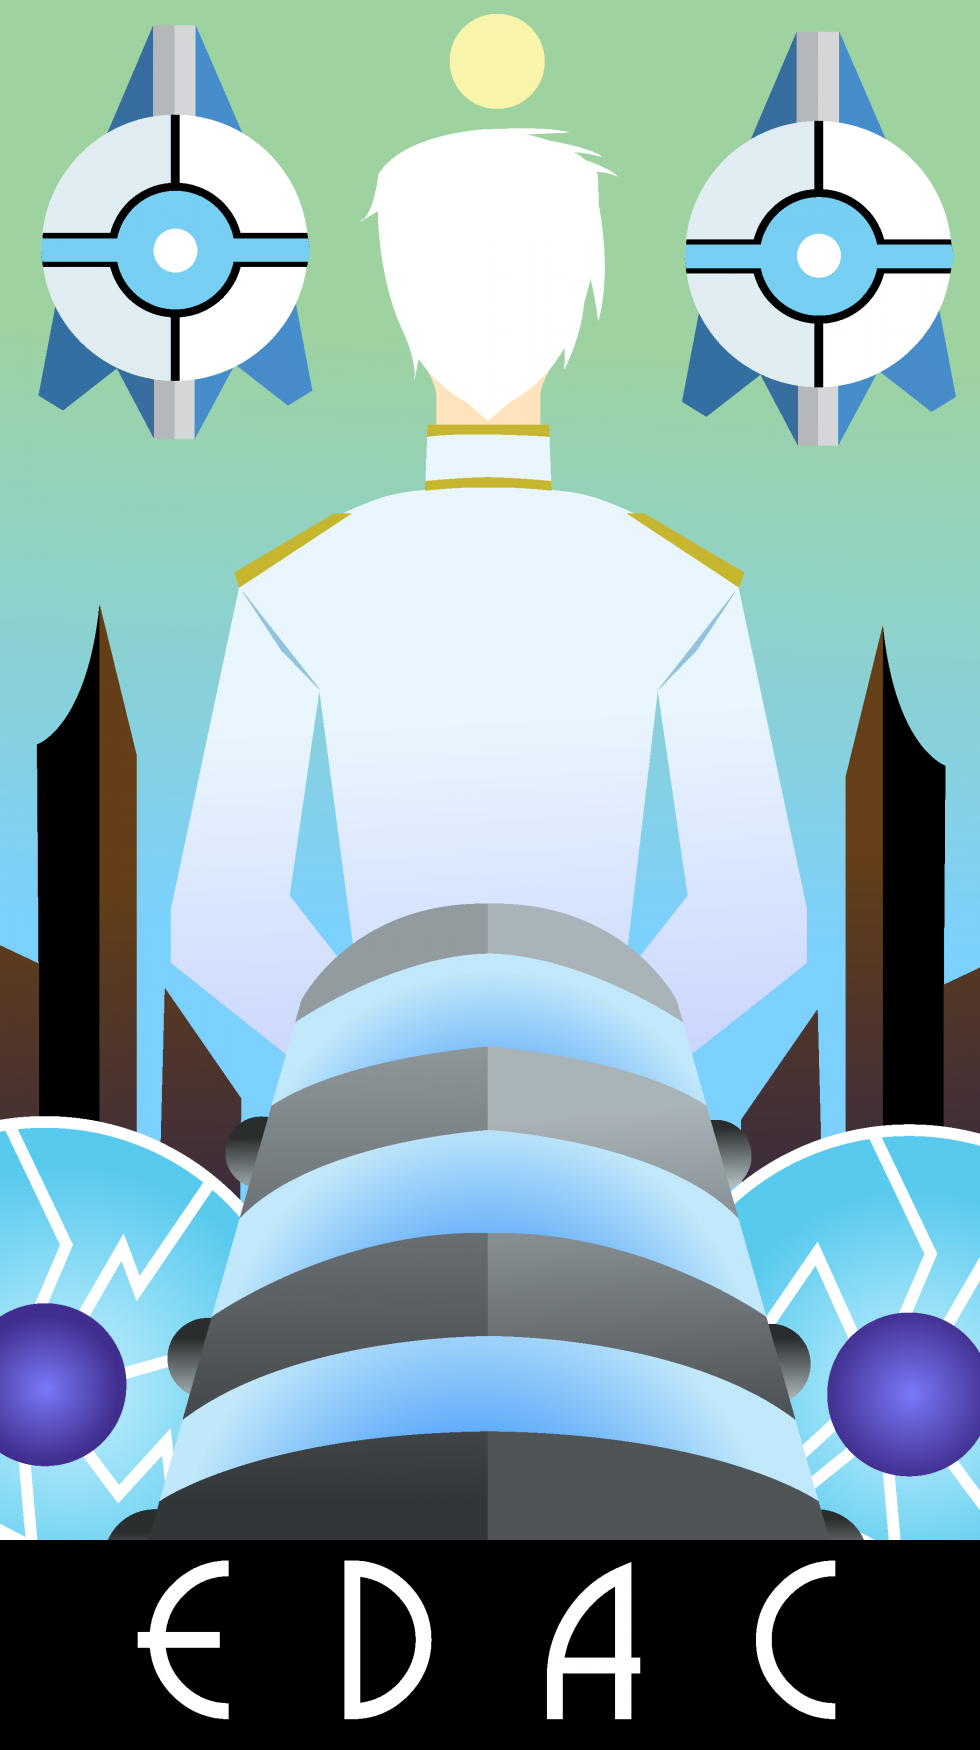 Posters of the major factions in the cyperpunk-esque city of Exia. Depicted are EDAC, the science and development center of the experimentally oriented city, in whites and blues, HERD, the city's increasingly robot dominated police force, in rusts and gre